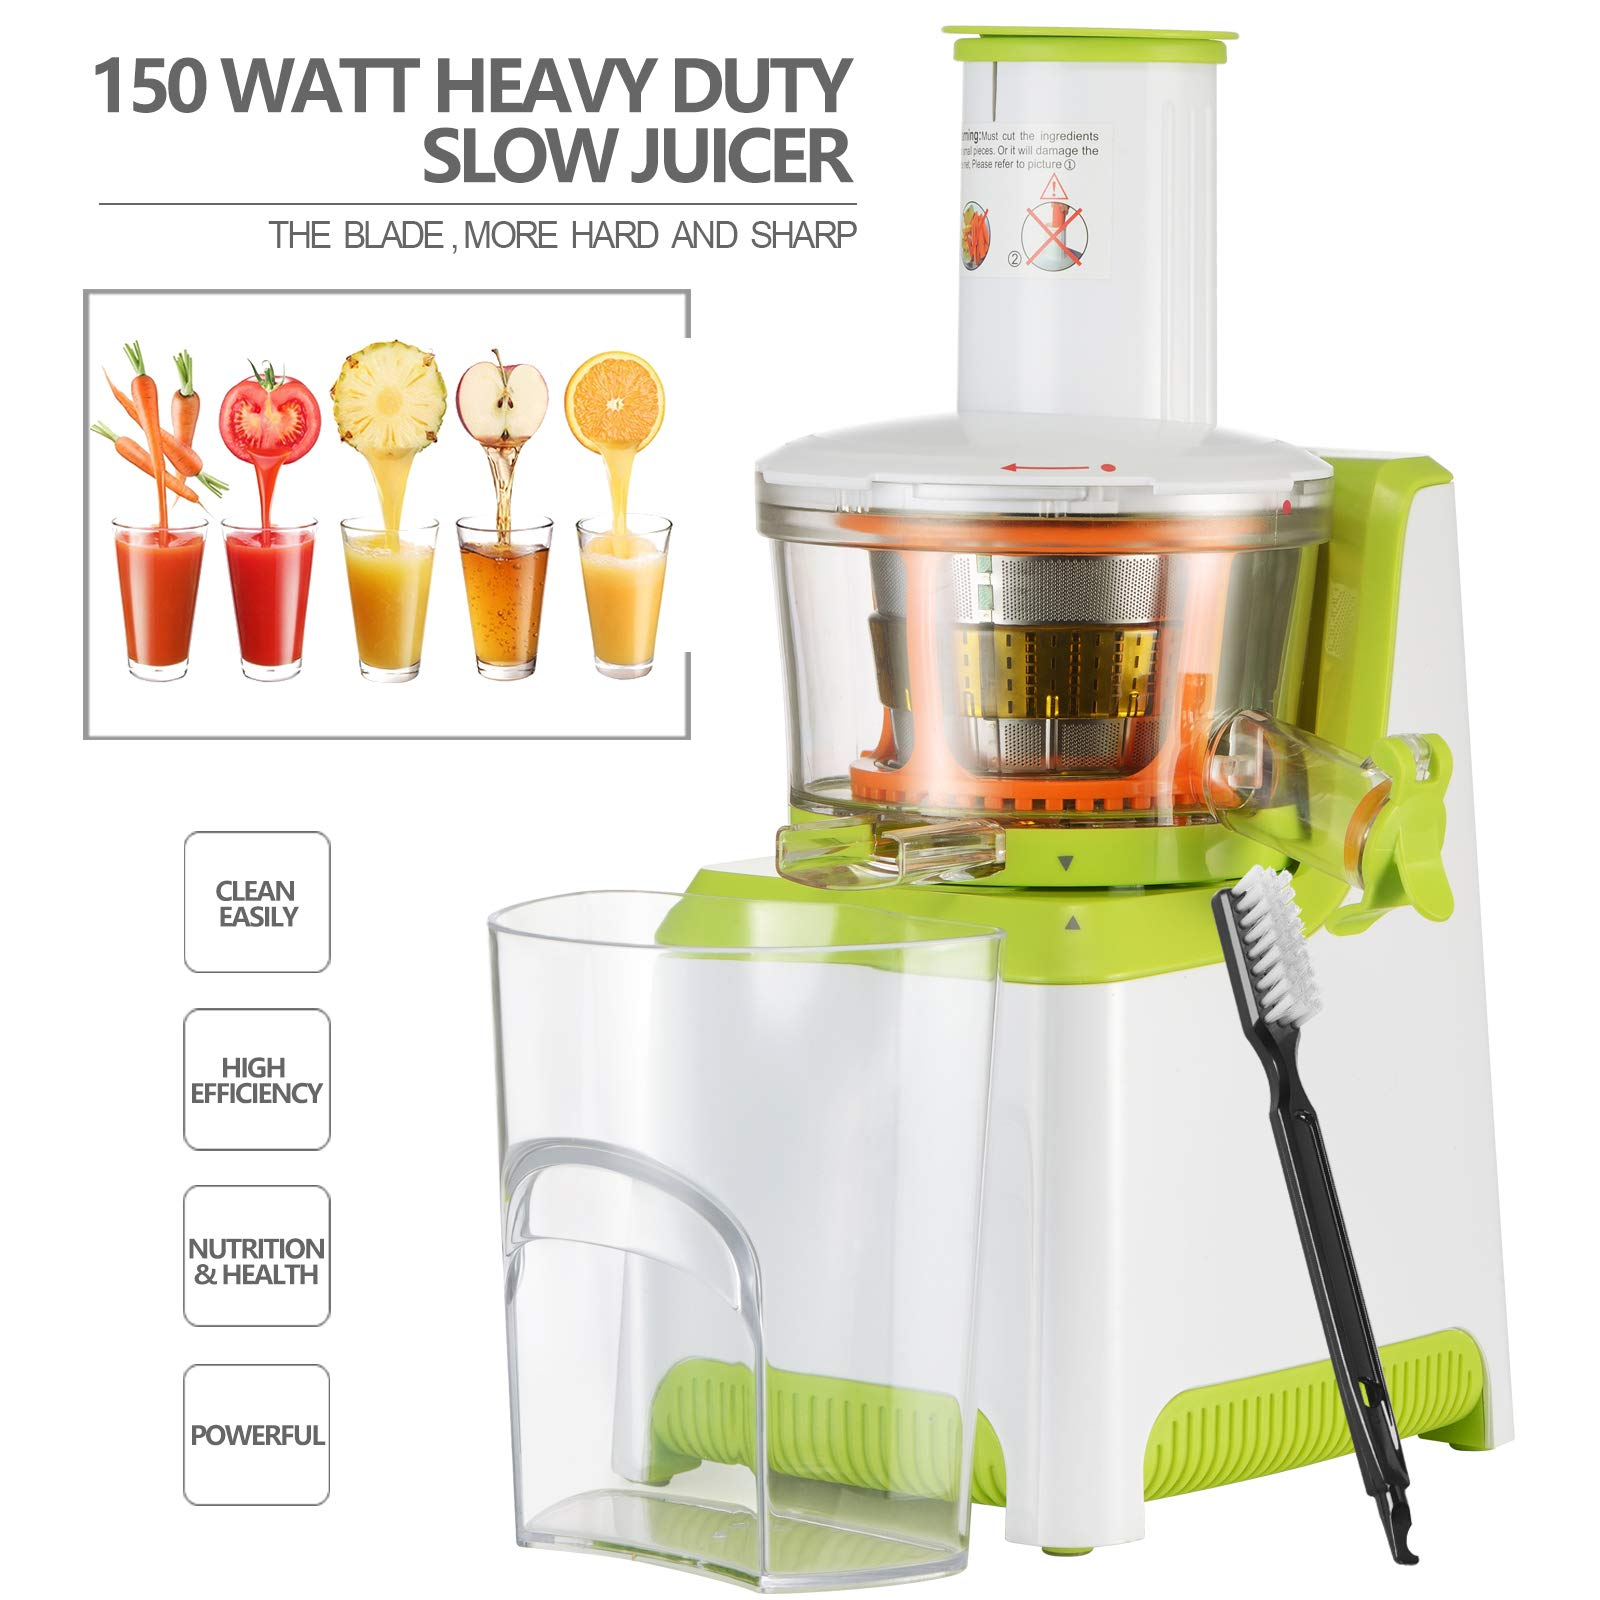 KUPPET Juicer, Slow Masticating Juicer, Higher Juicer Yield, Cold Press Juicer Machine with Quiet Motor & Reverse Function, High Nutrient Fruit & Vegetable Juice, Easy to Clean (Green&White) by KUPPET (Image #5)